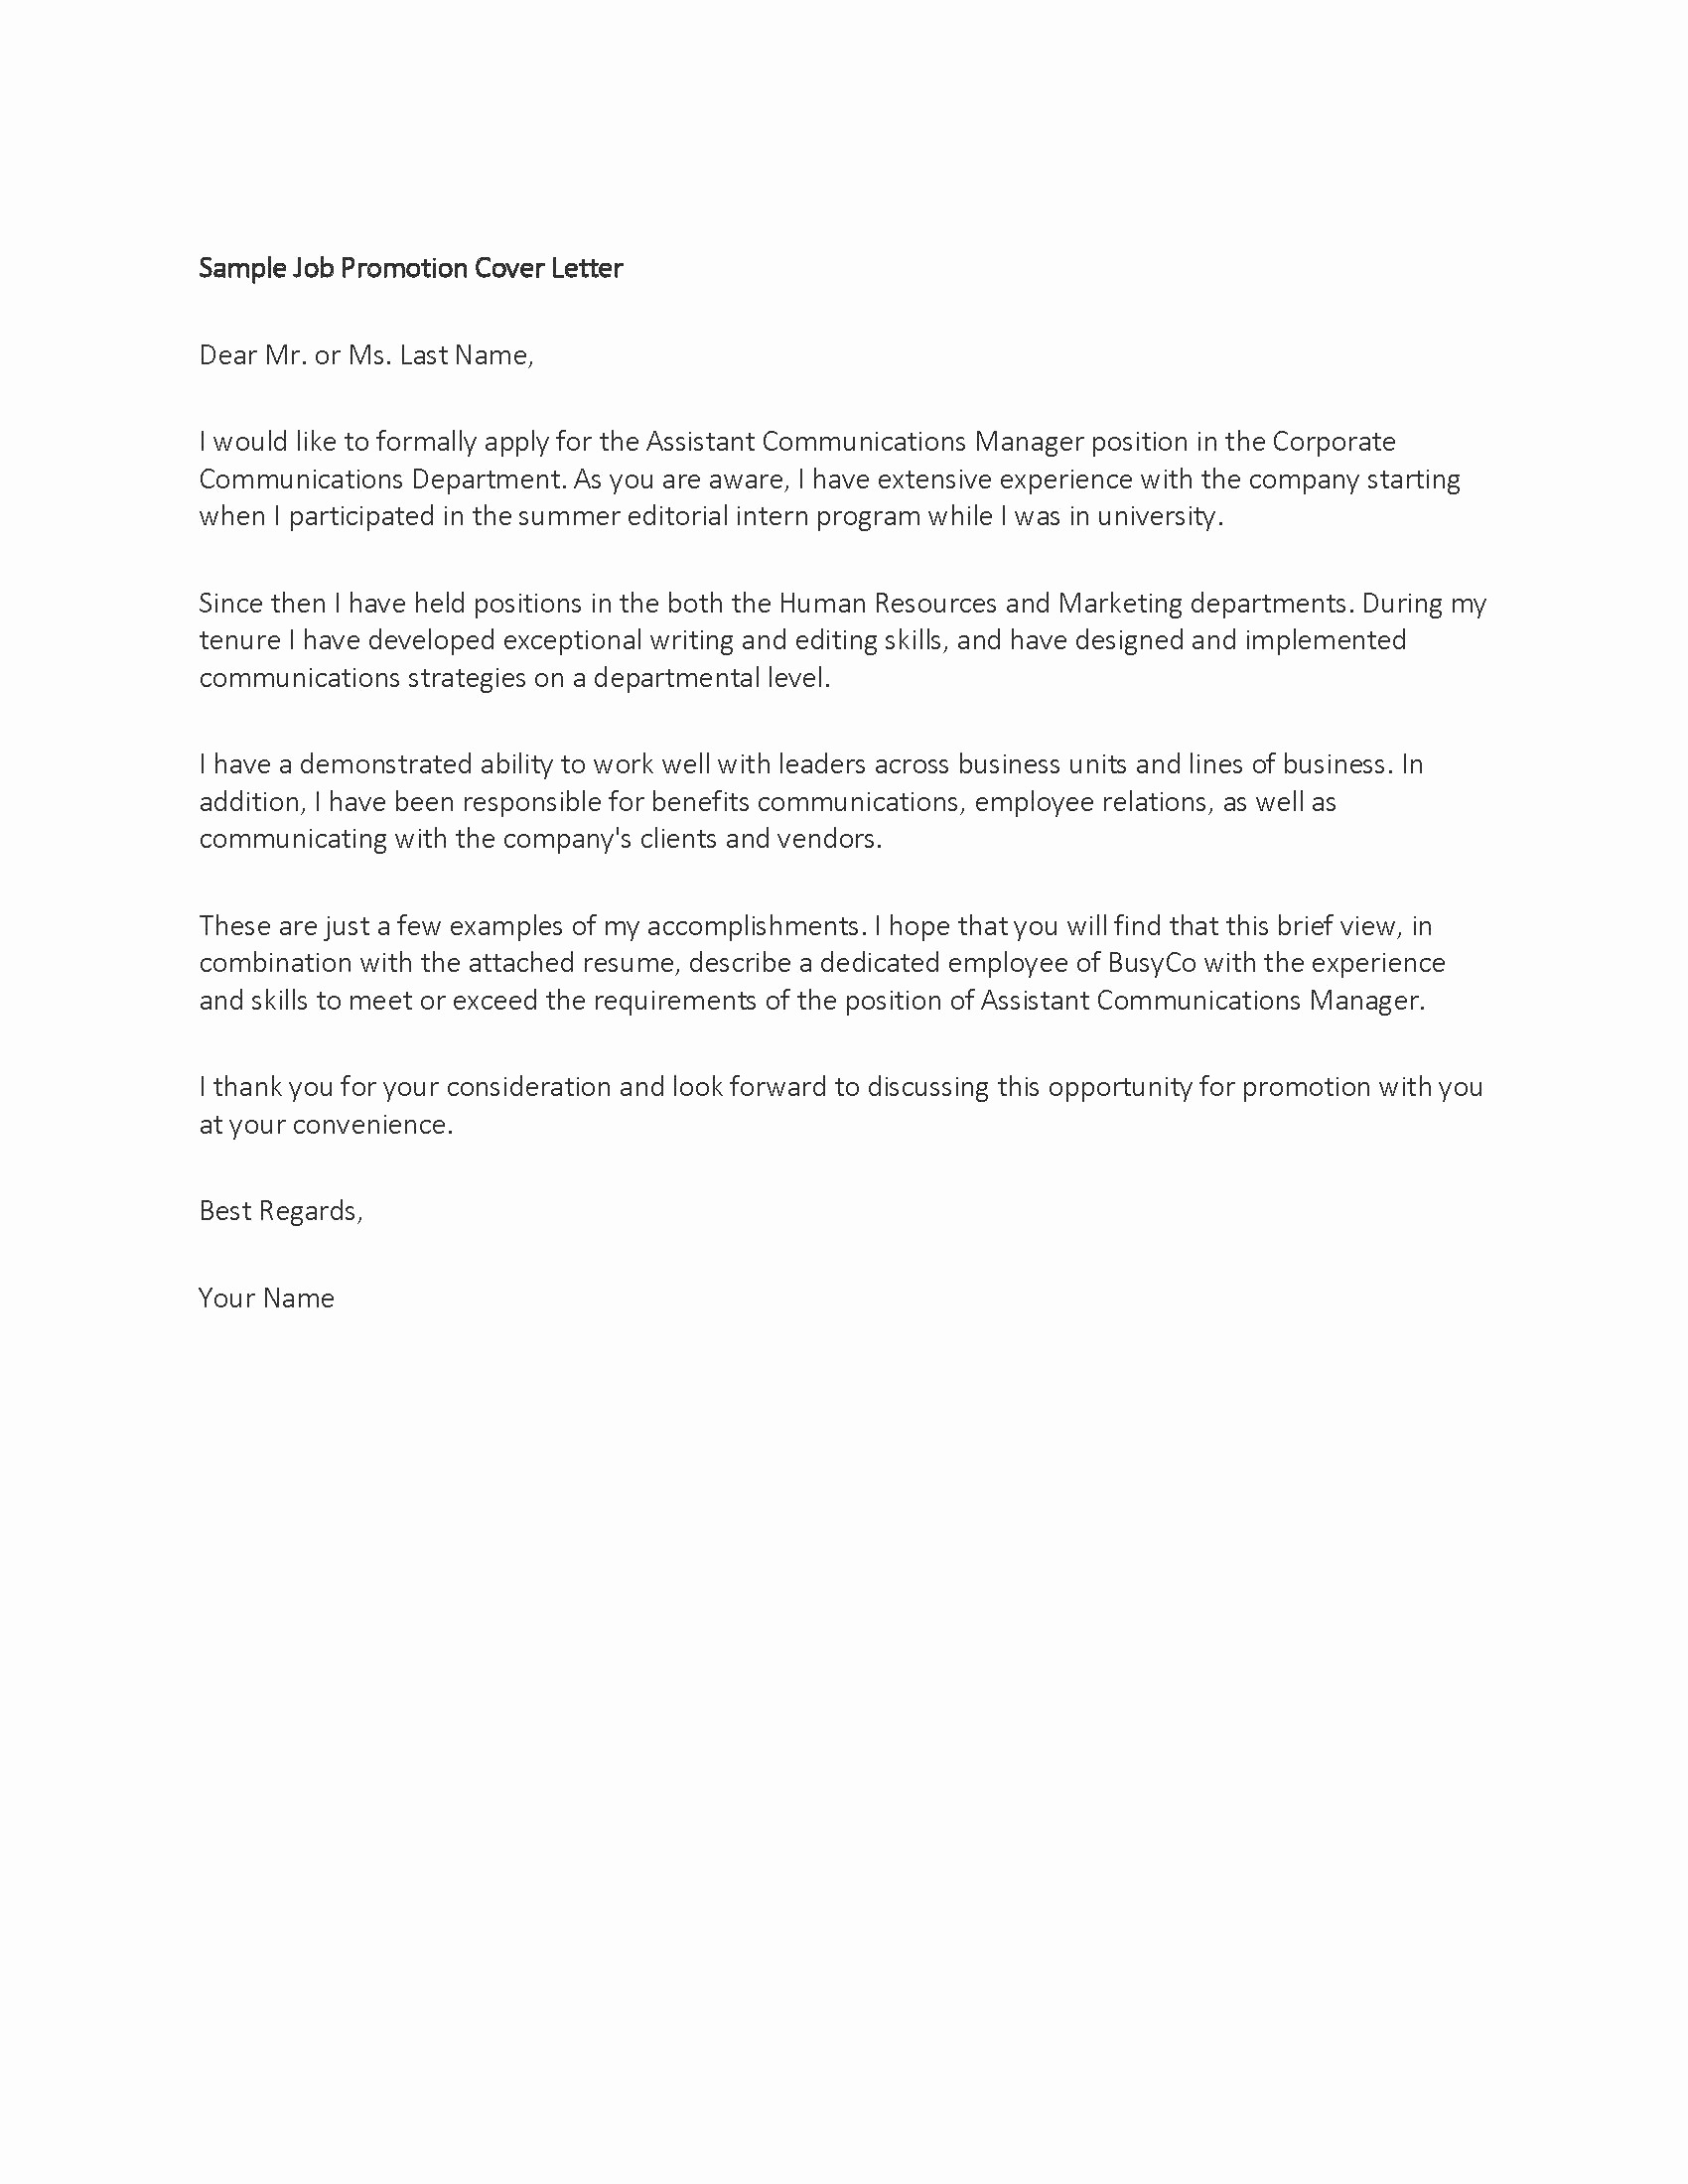 Letter Of Engagement Template for Hiring New Employees - Stunning Hiring Letter for A New Employee